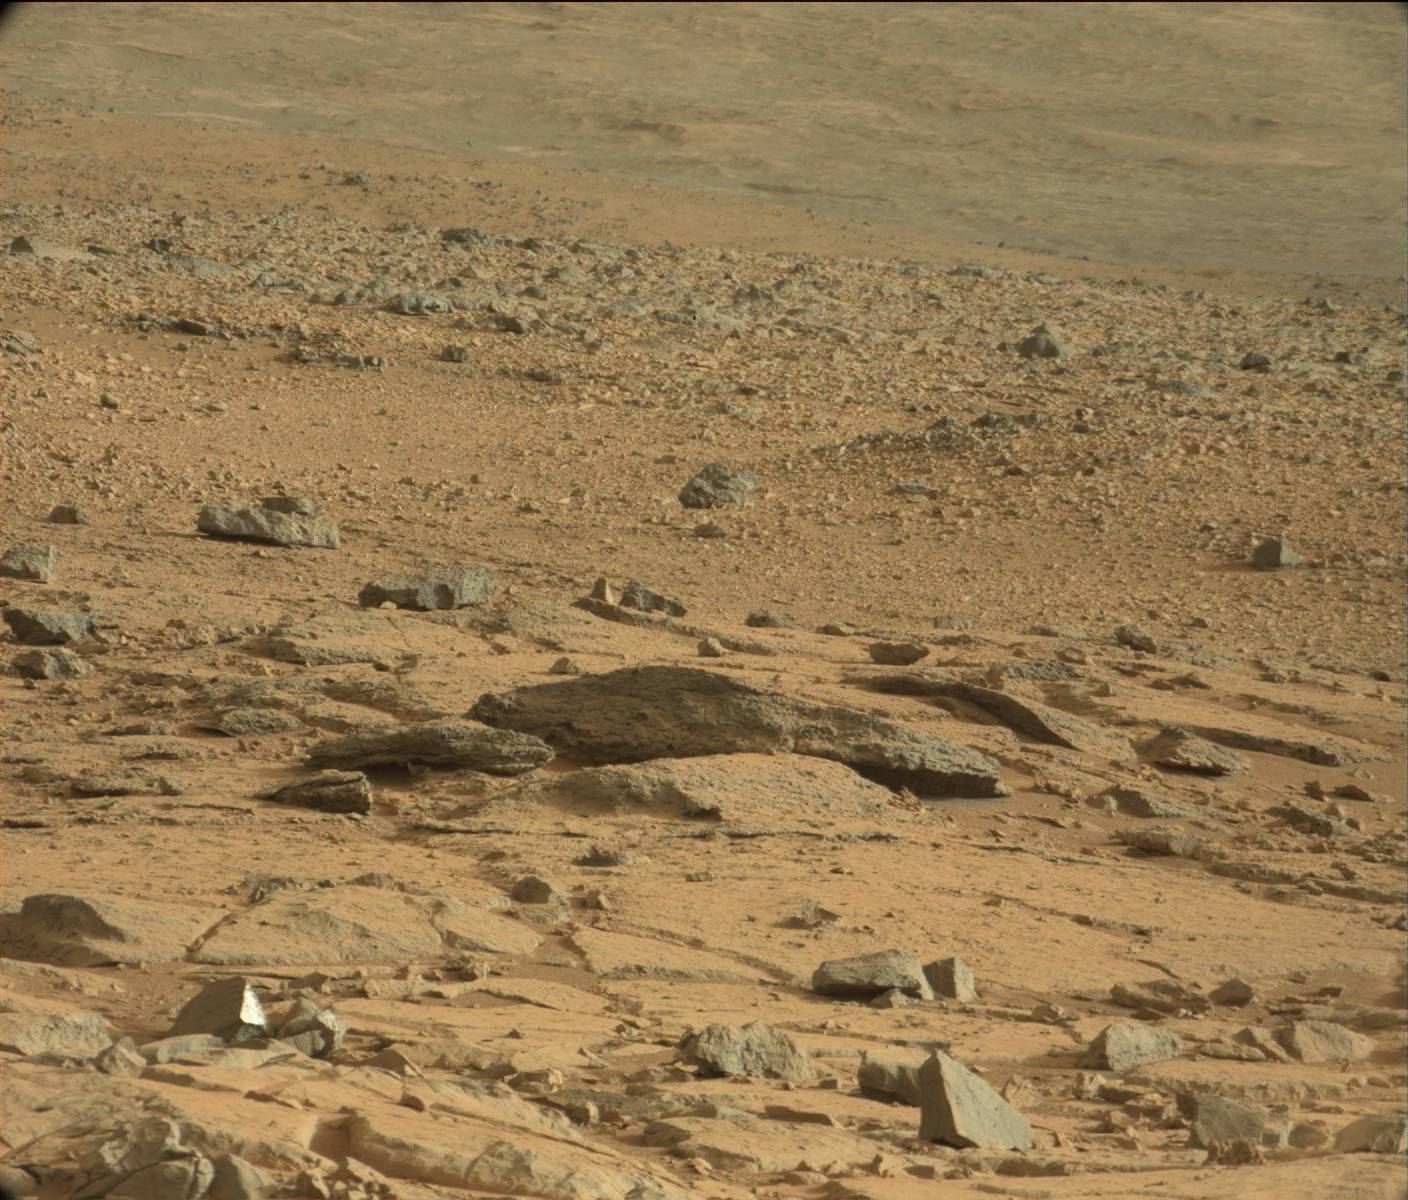 actual mars rover pictures nasa - photo #28